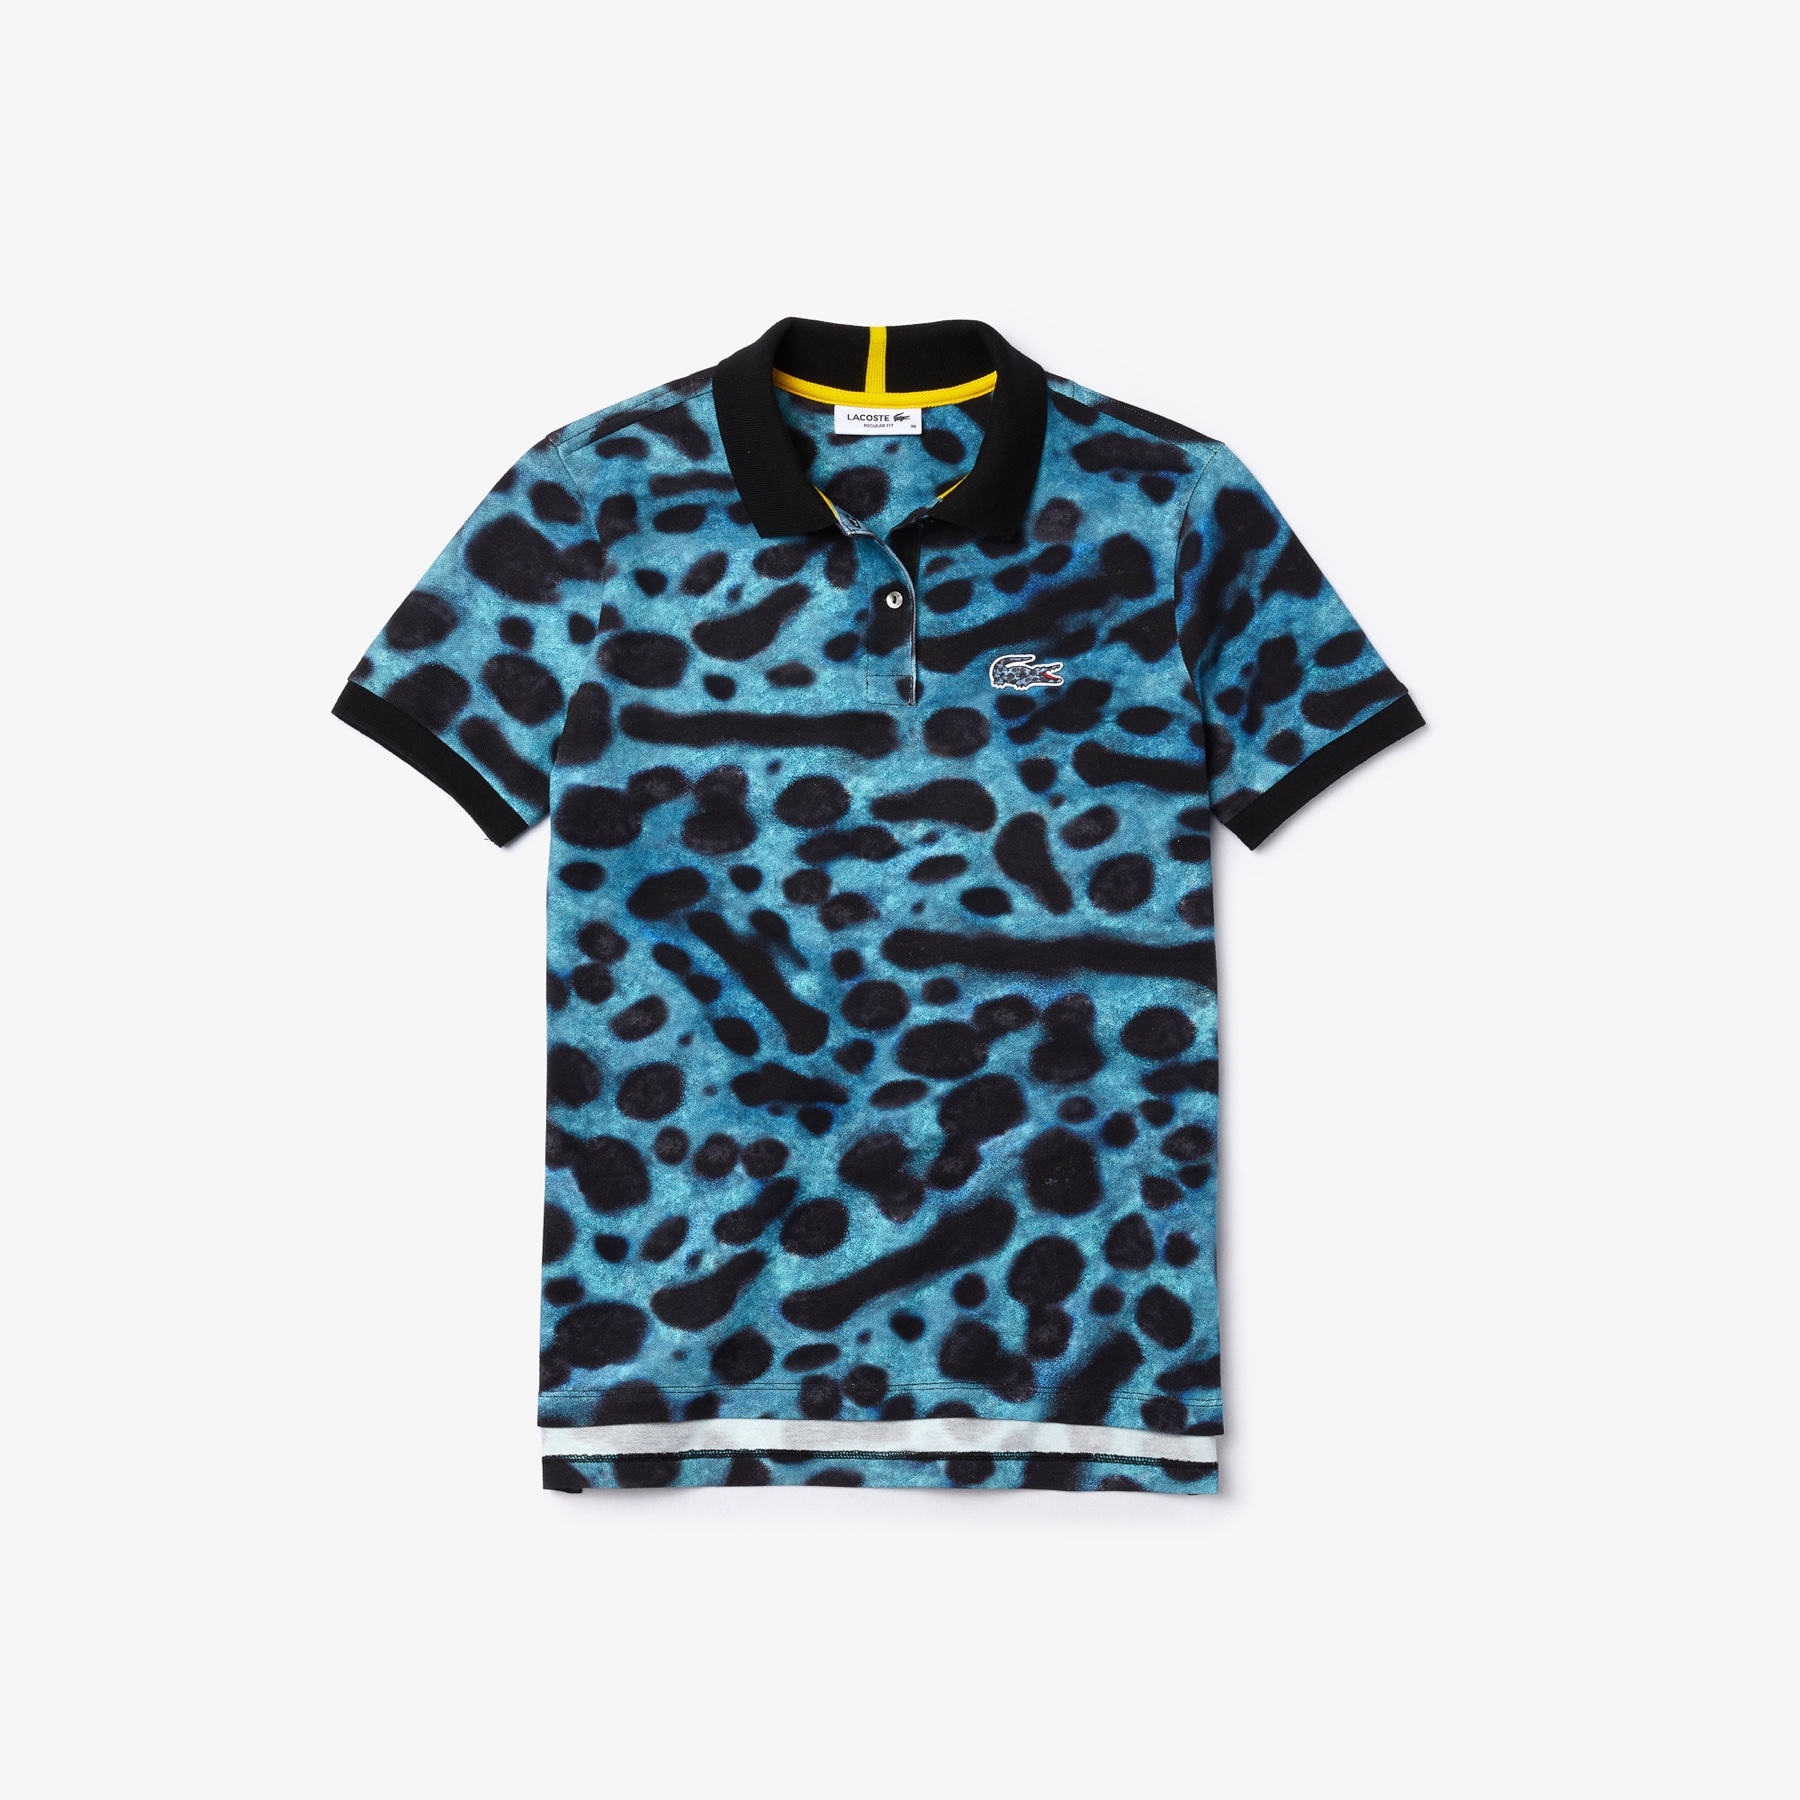 Lacoste National Geographic T-shirt